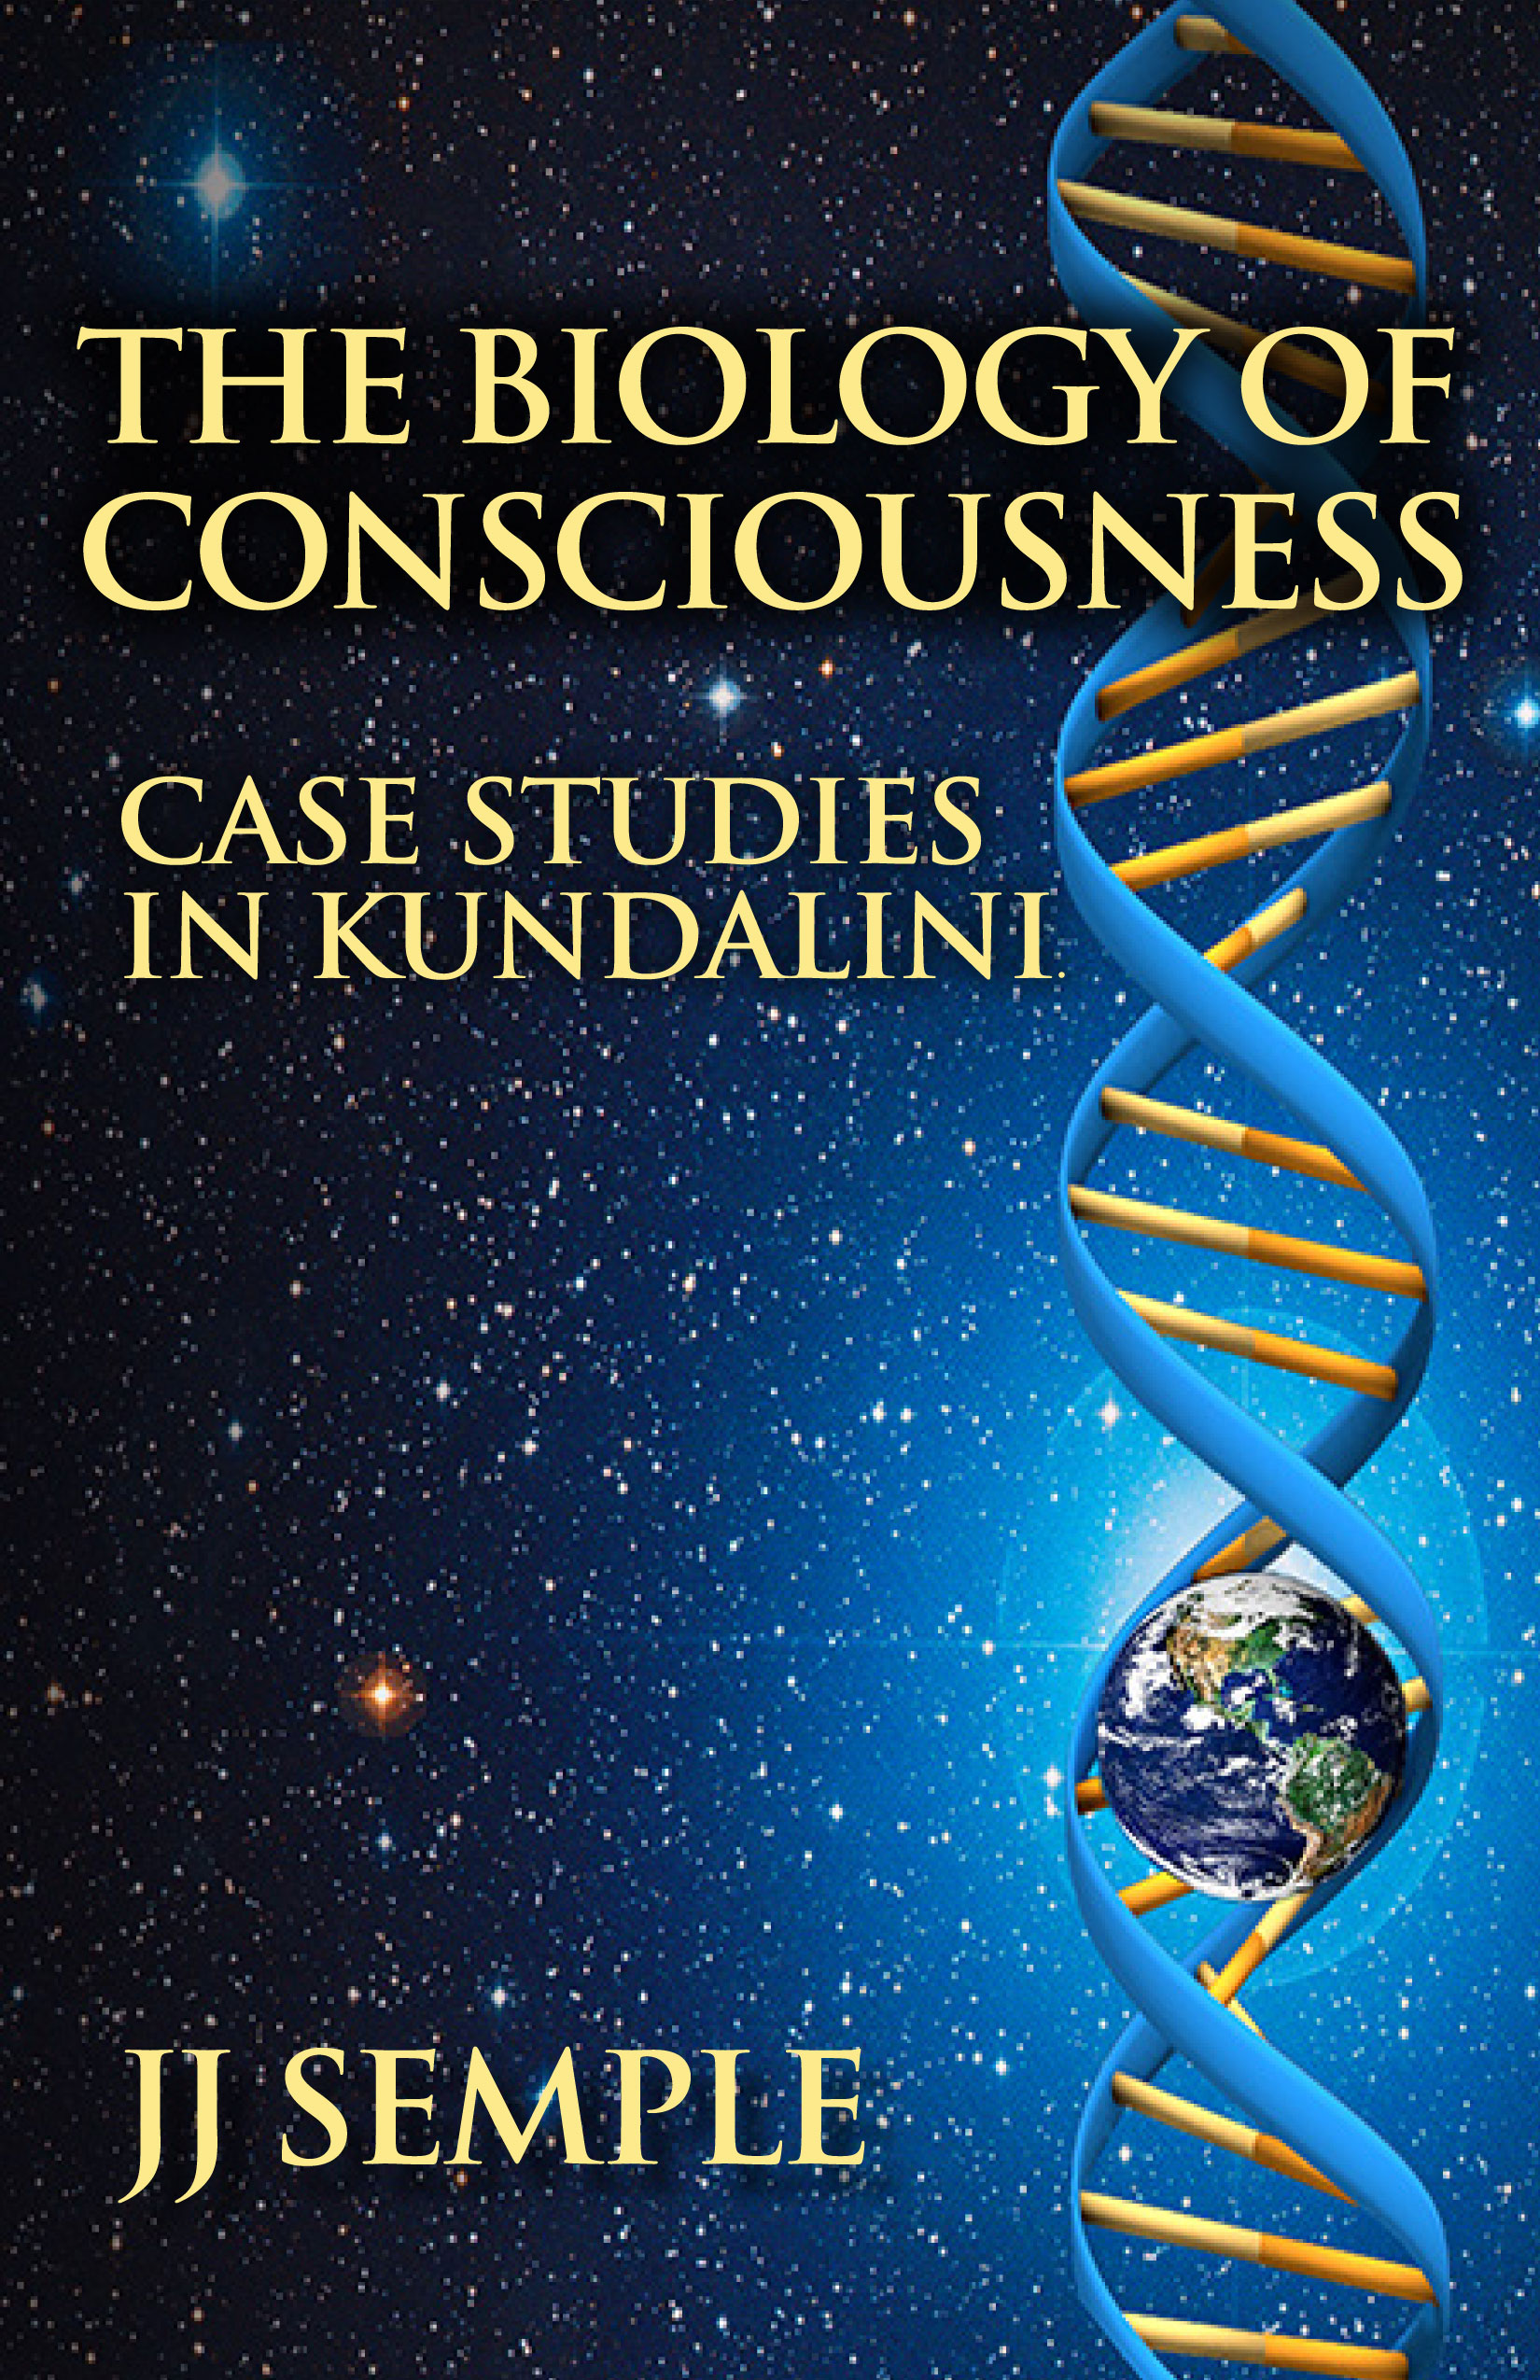 The Biology of Consciousness: Case Studies in Kundalini, an Ebook by JJ  Semple